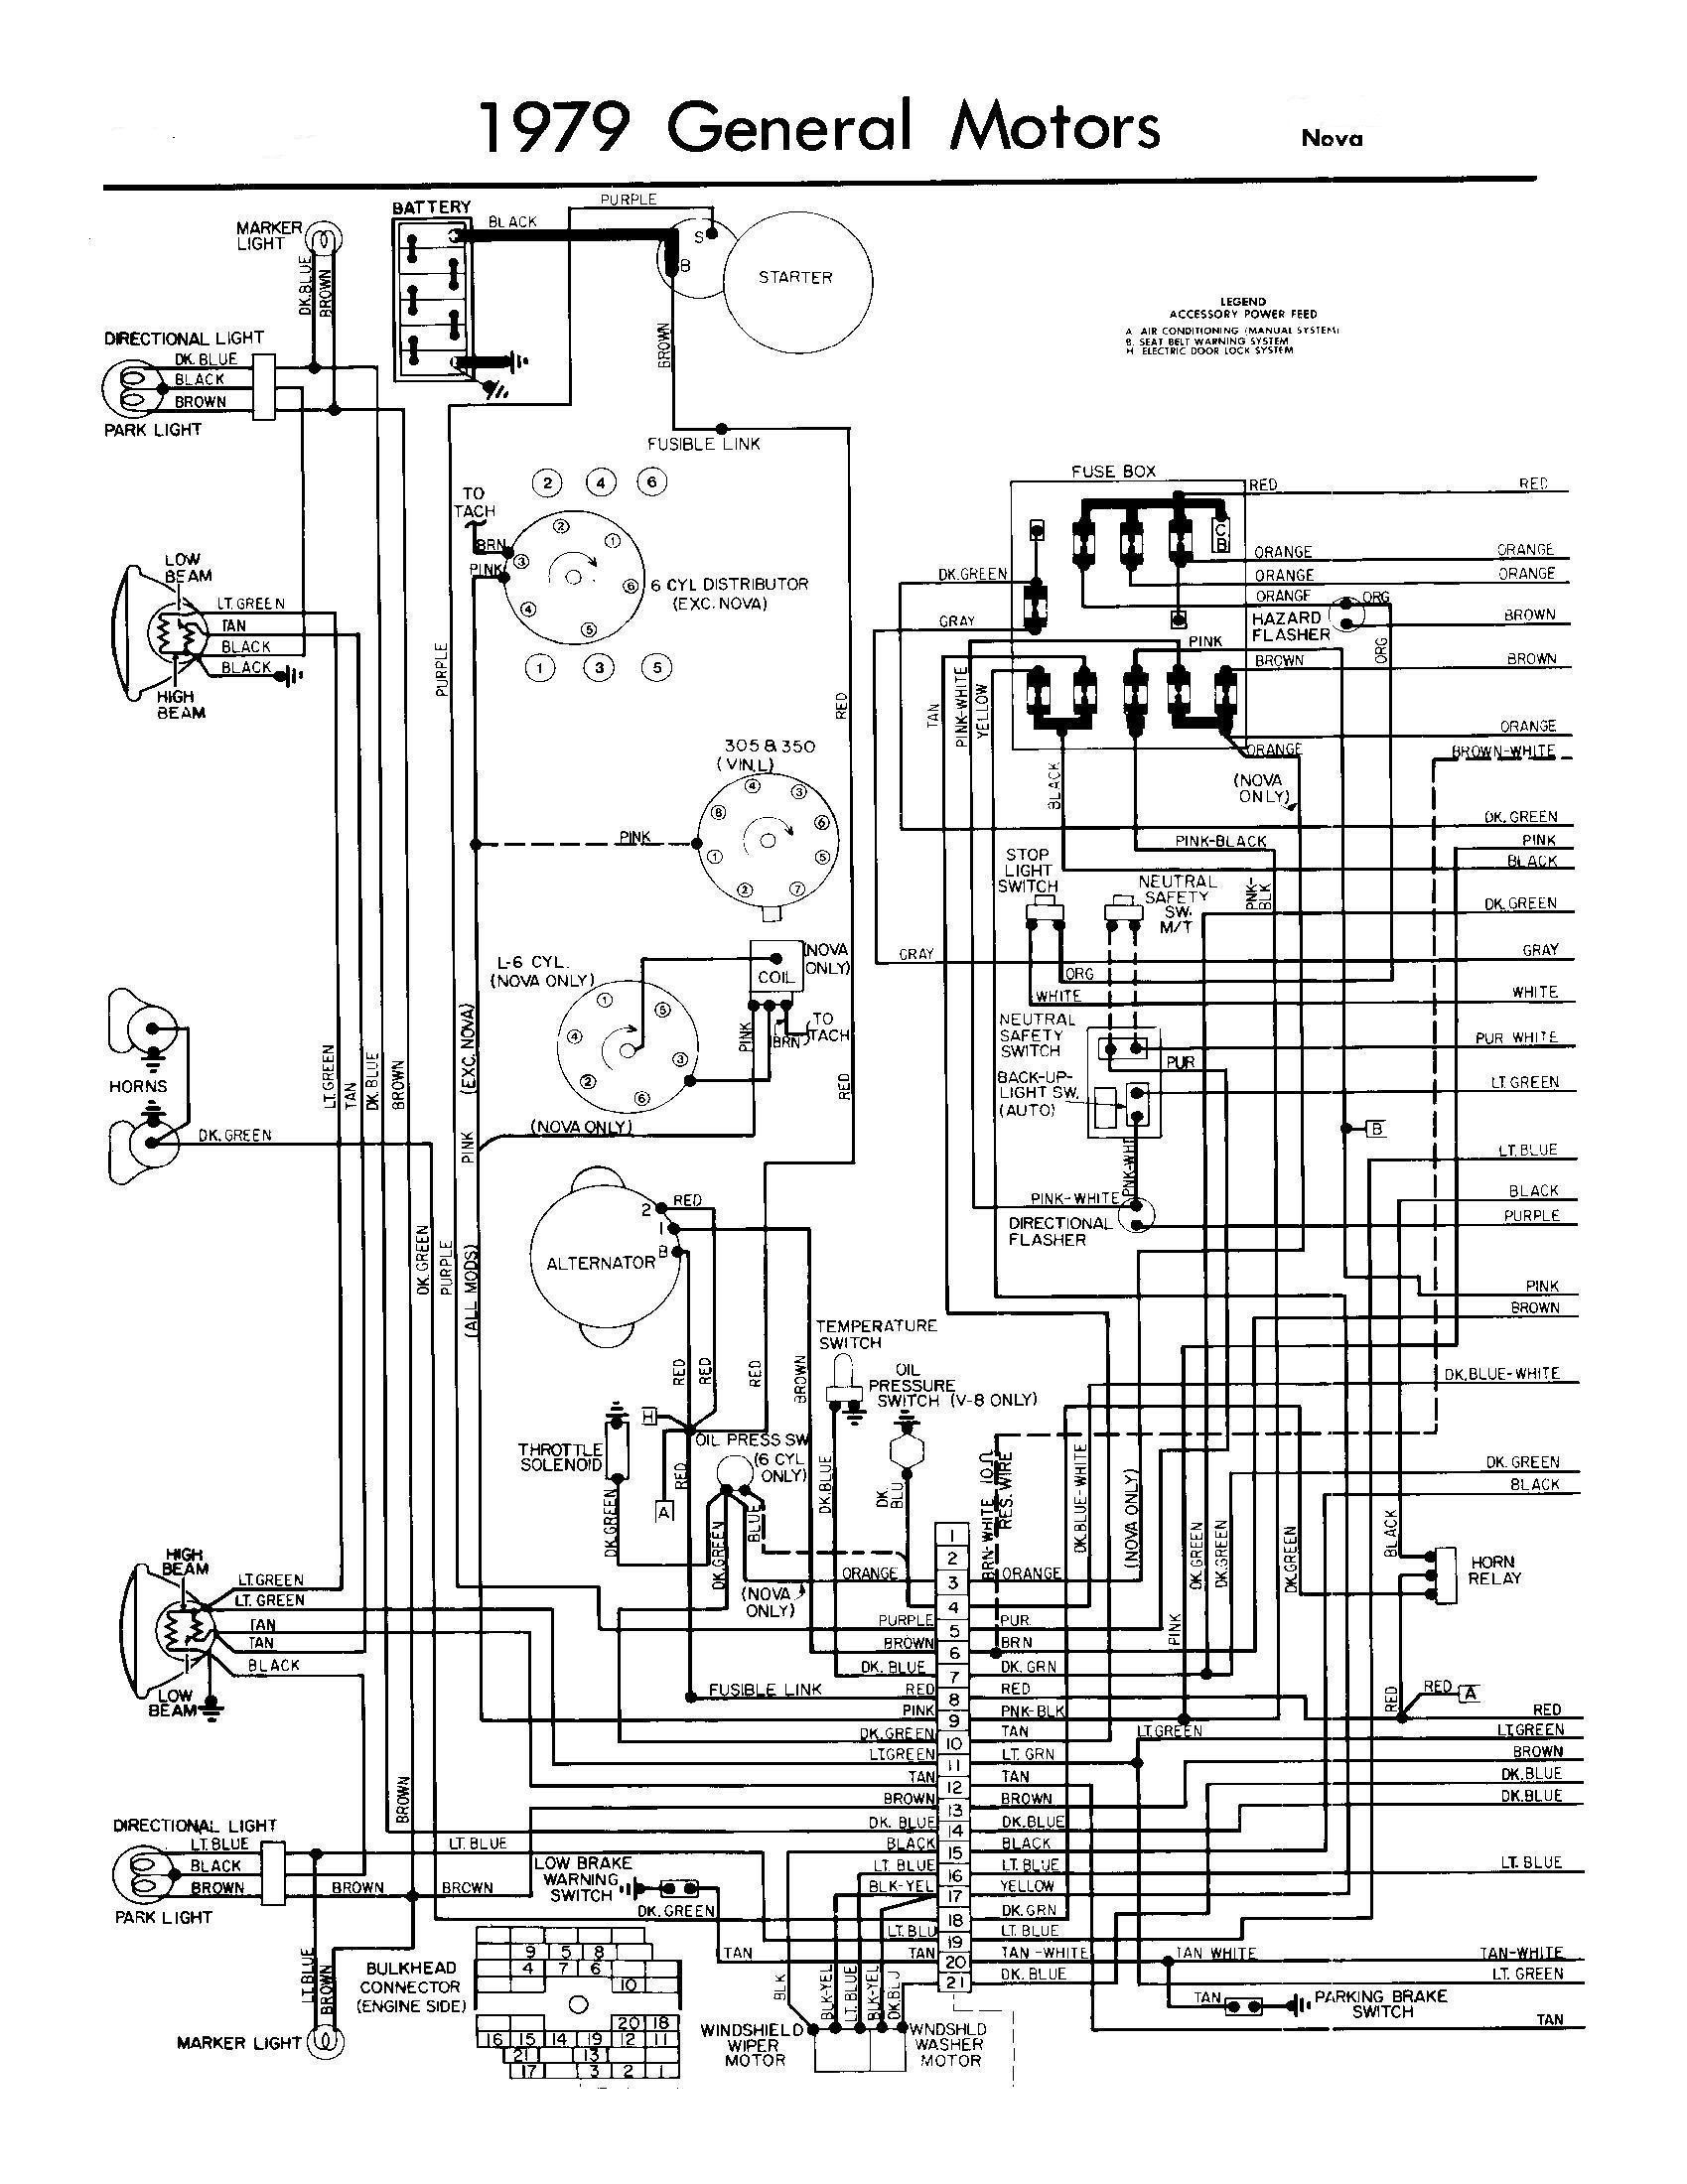 1966 International Truck Wiring Diagrams Archive Of Automotive Trucks Diagram Schematics Rh Thyl Co Uk